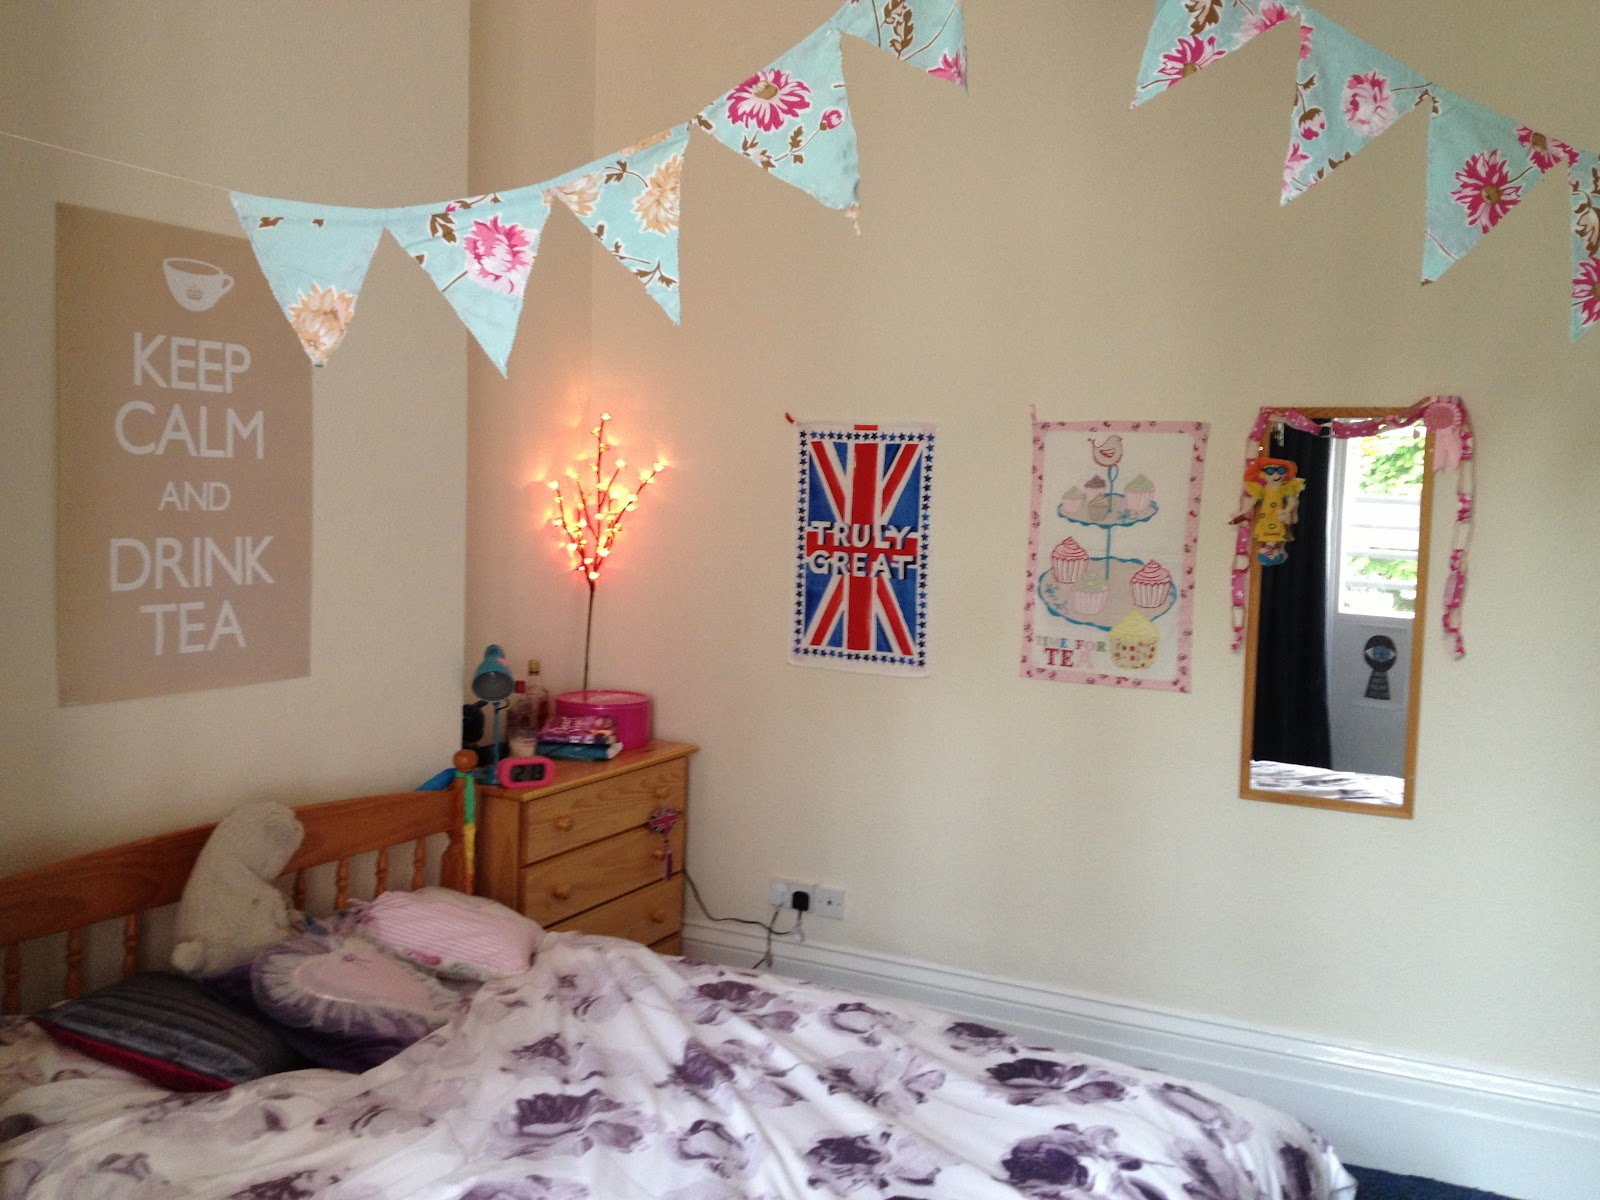 The twenty best ways to decorate your student room at uni handbags and cupcakes - How we paint your room ...